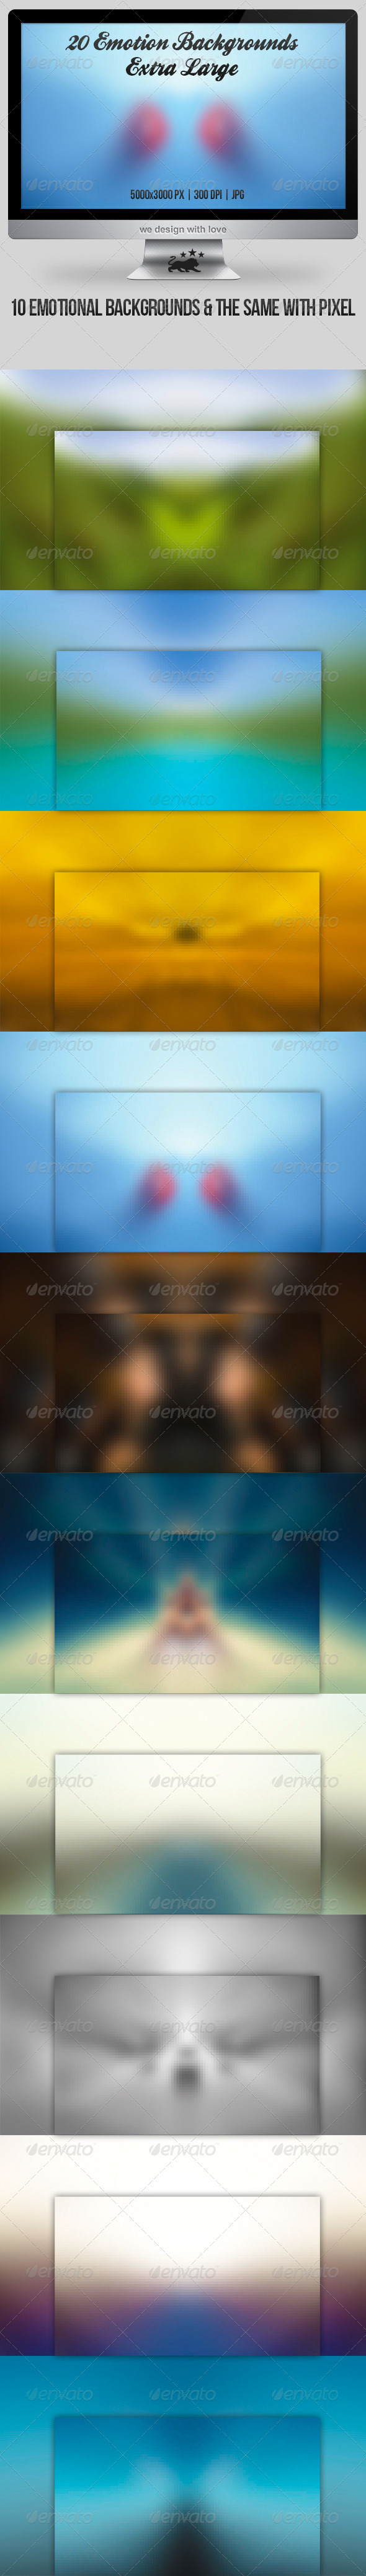 GraphicRiver 20 Emotion Blurry Backgrounds Extra Large 3587440